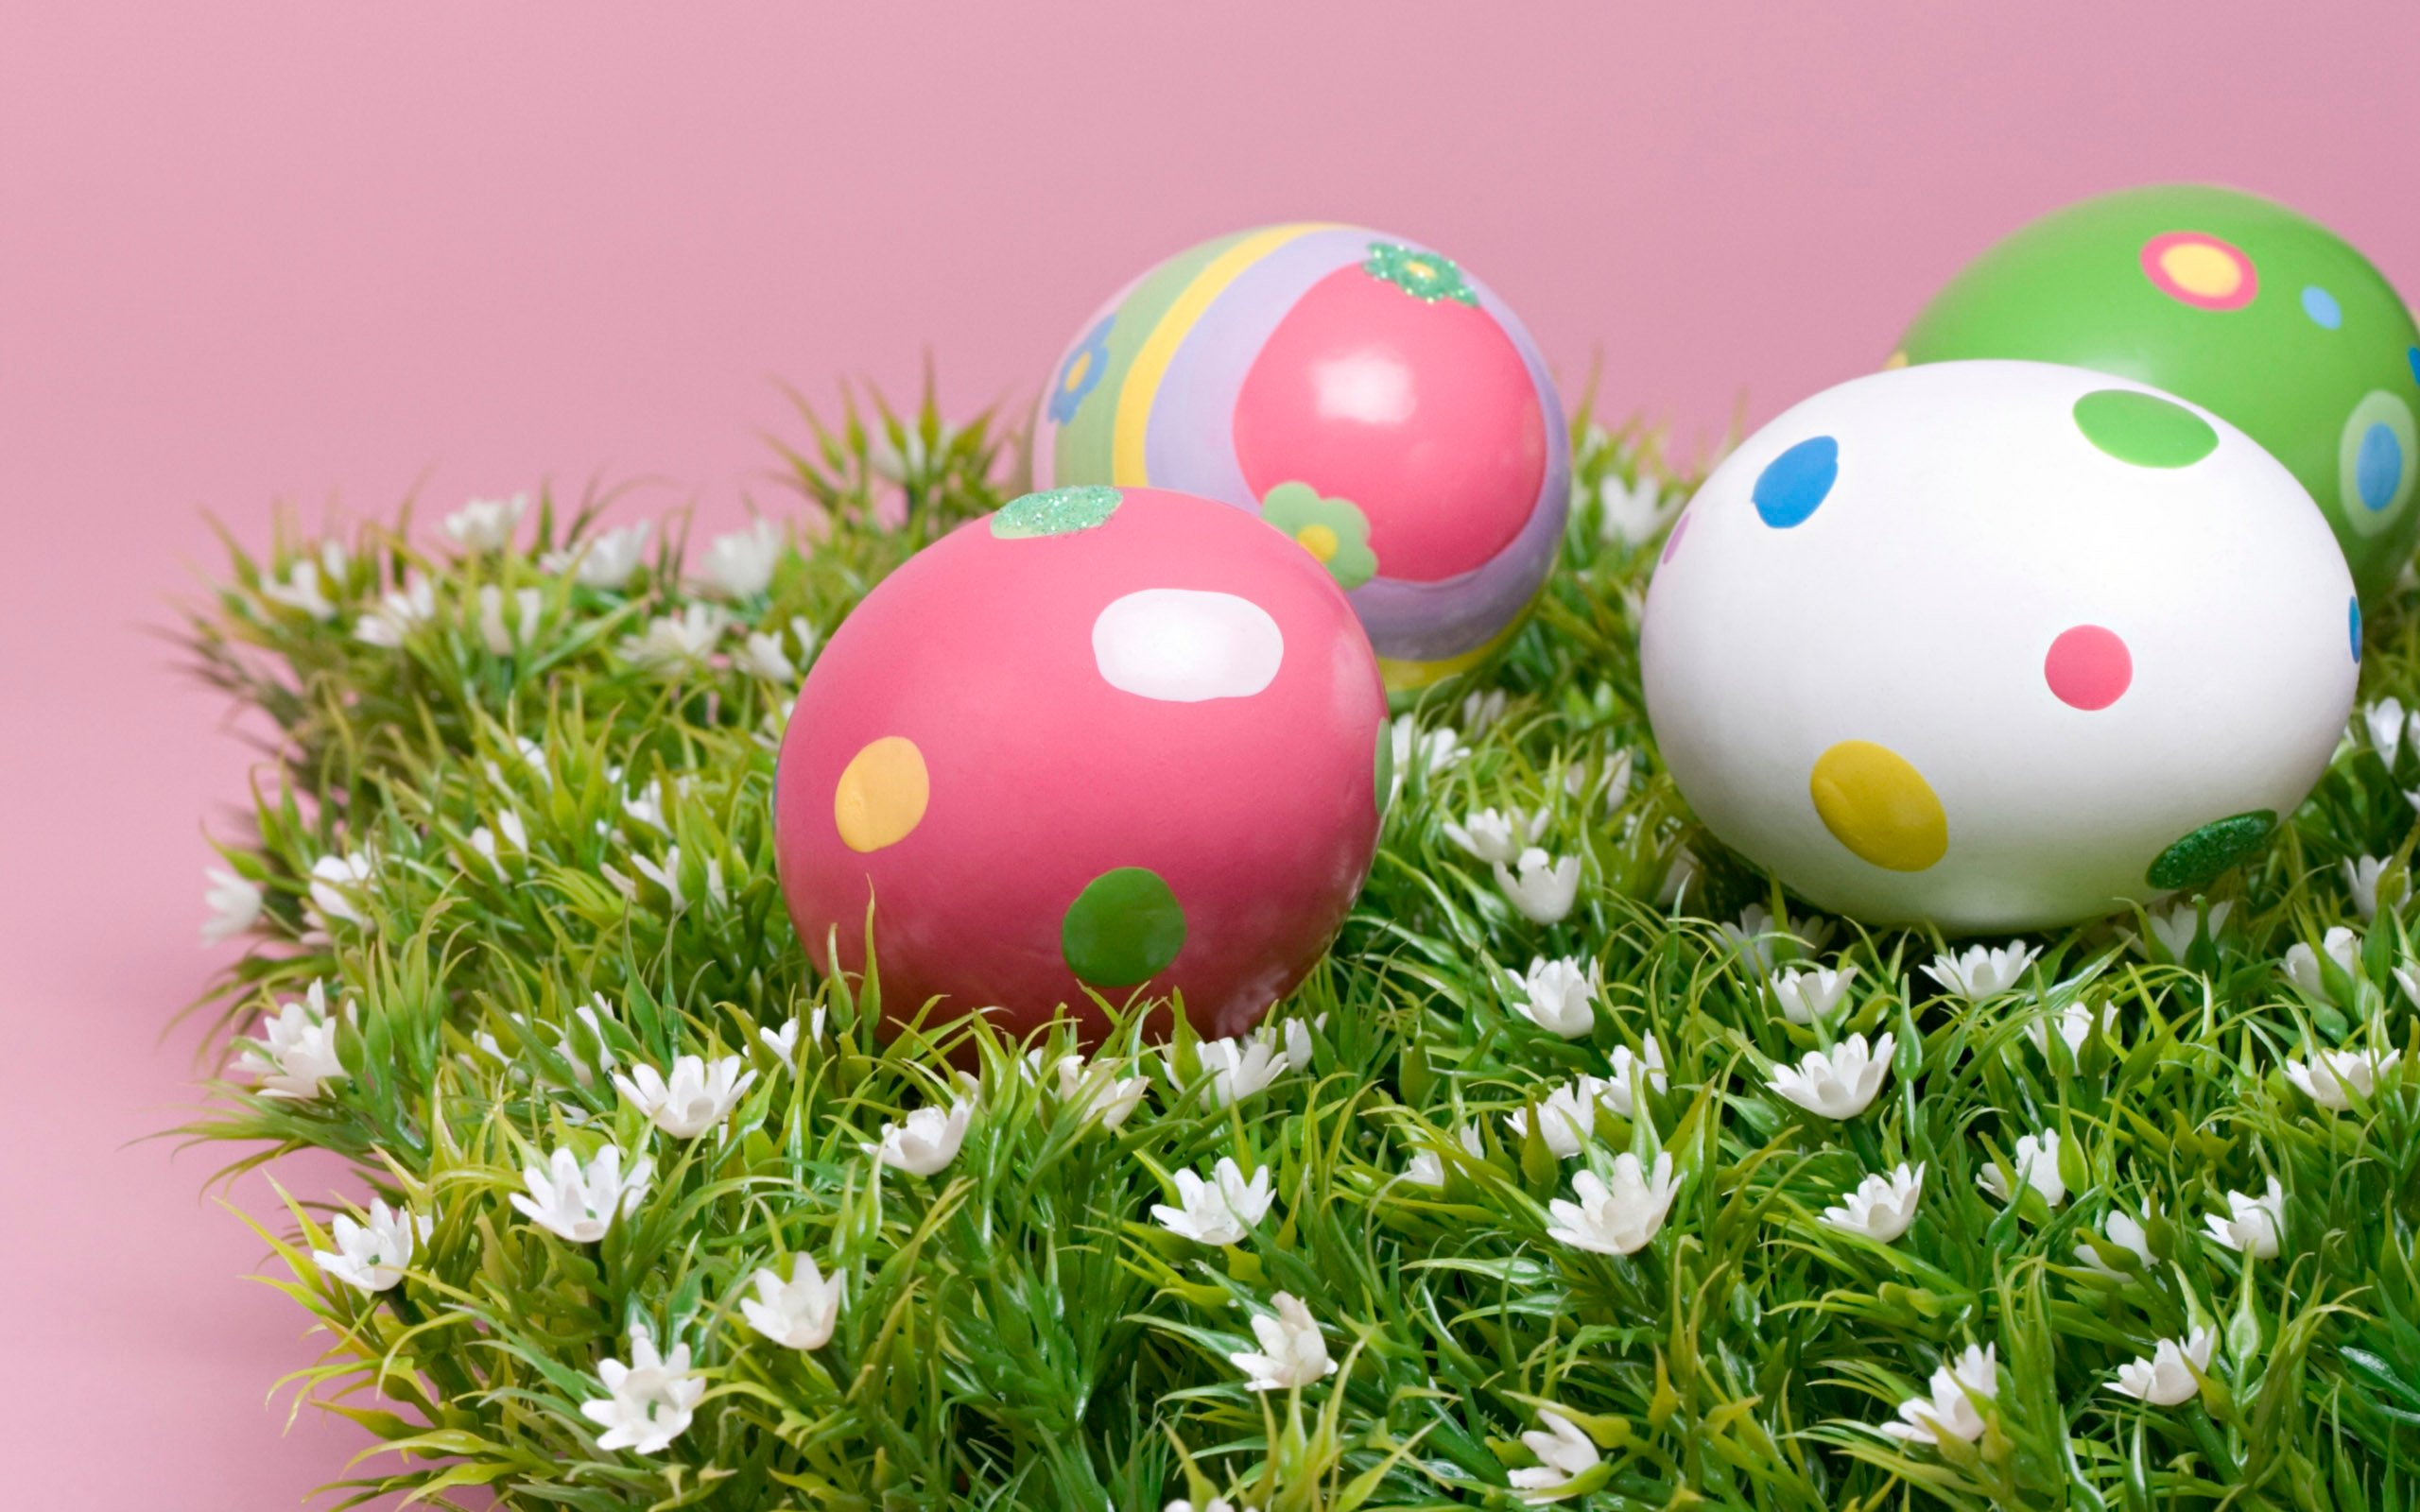 Cute Easter Eggs Picture HD wallpaper Wallpapers   HD Wallpapers 2560x1600